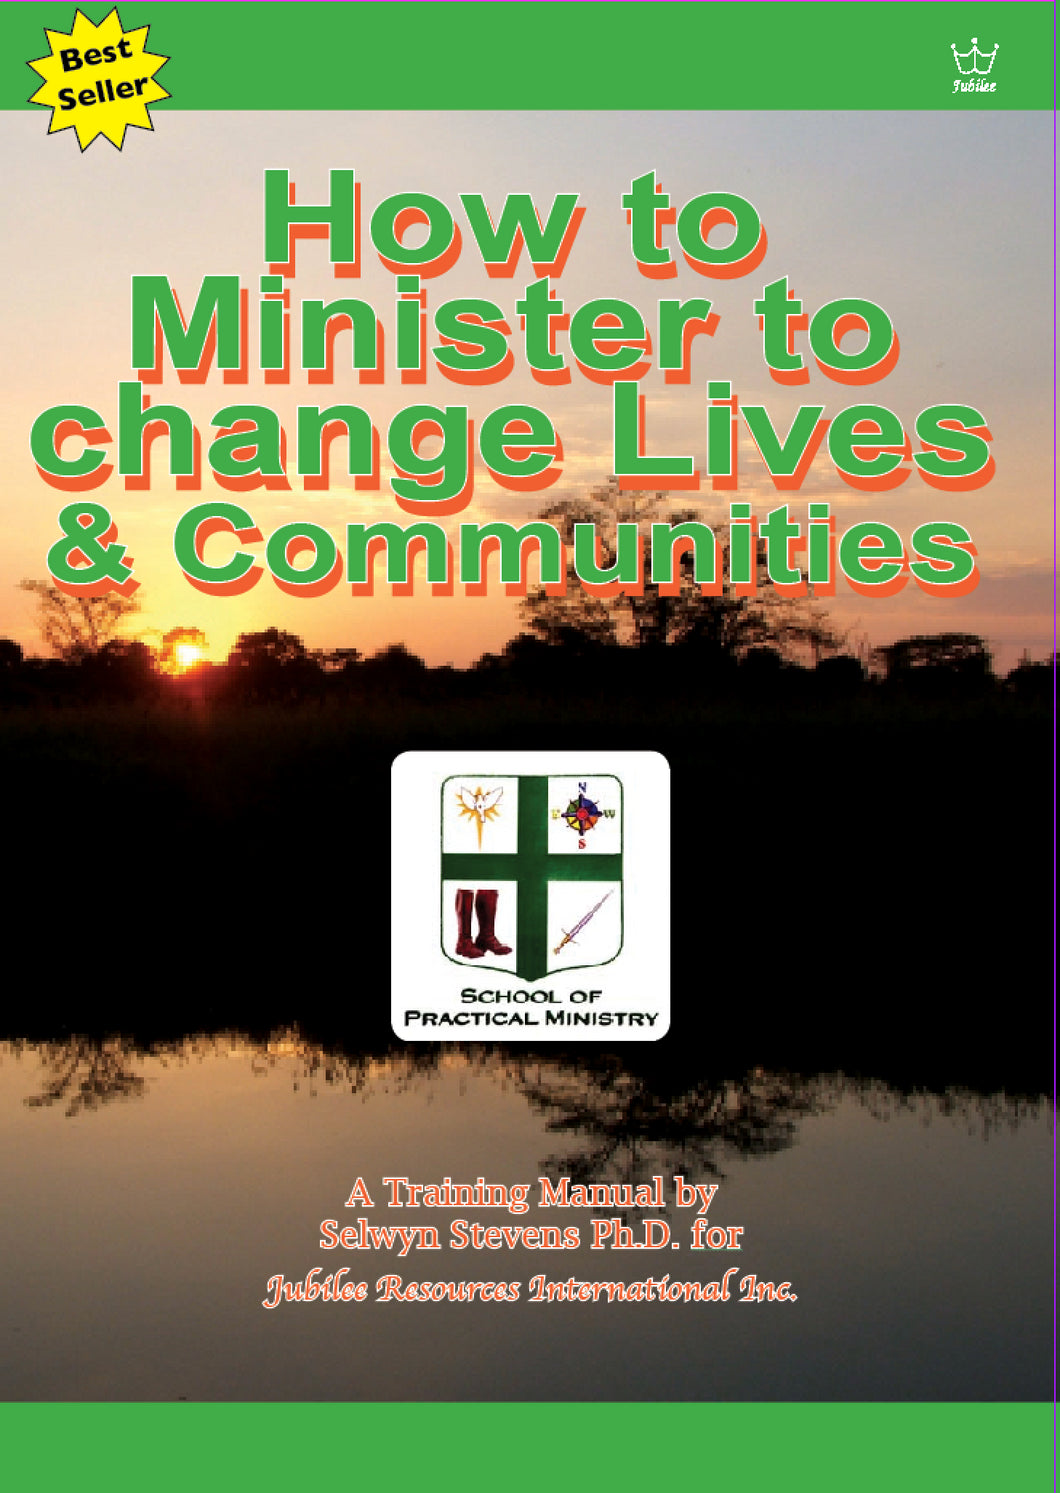 How to Minister to Change Lives and Communities. DVD set